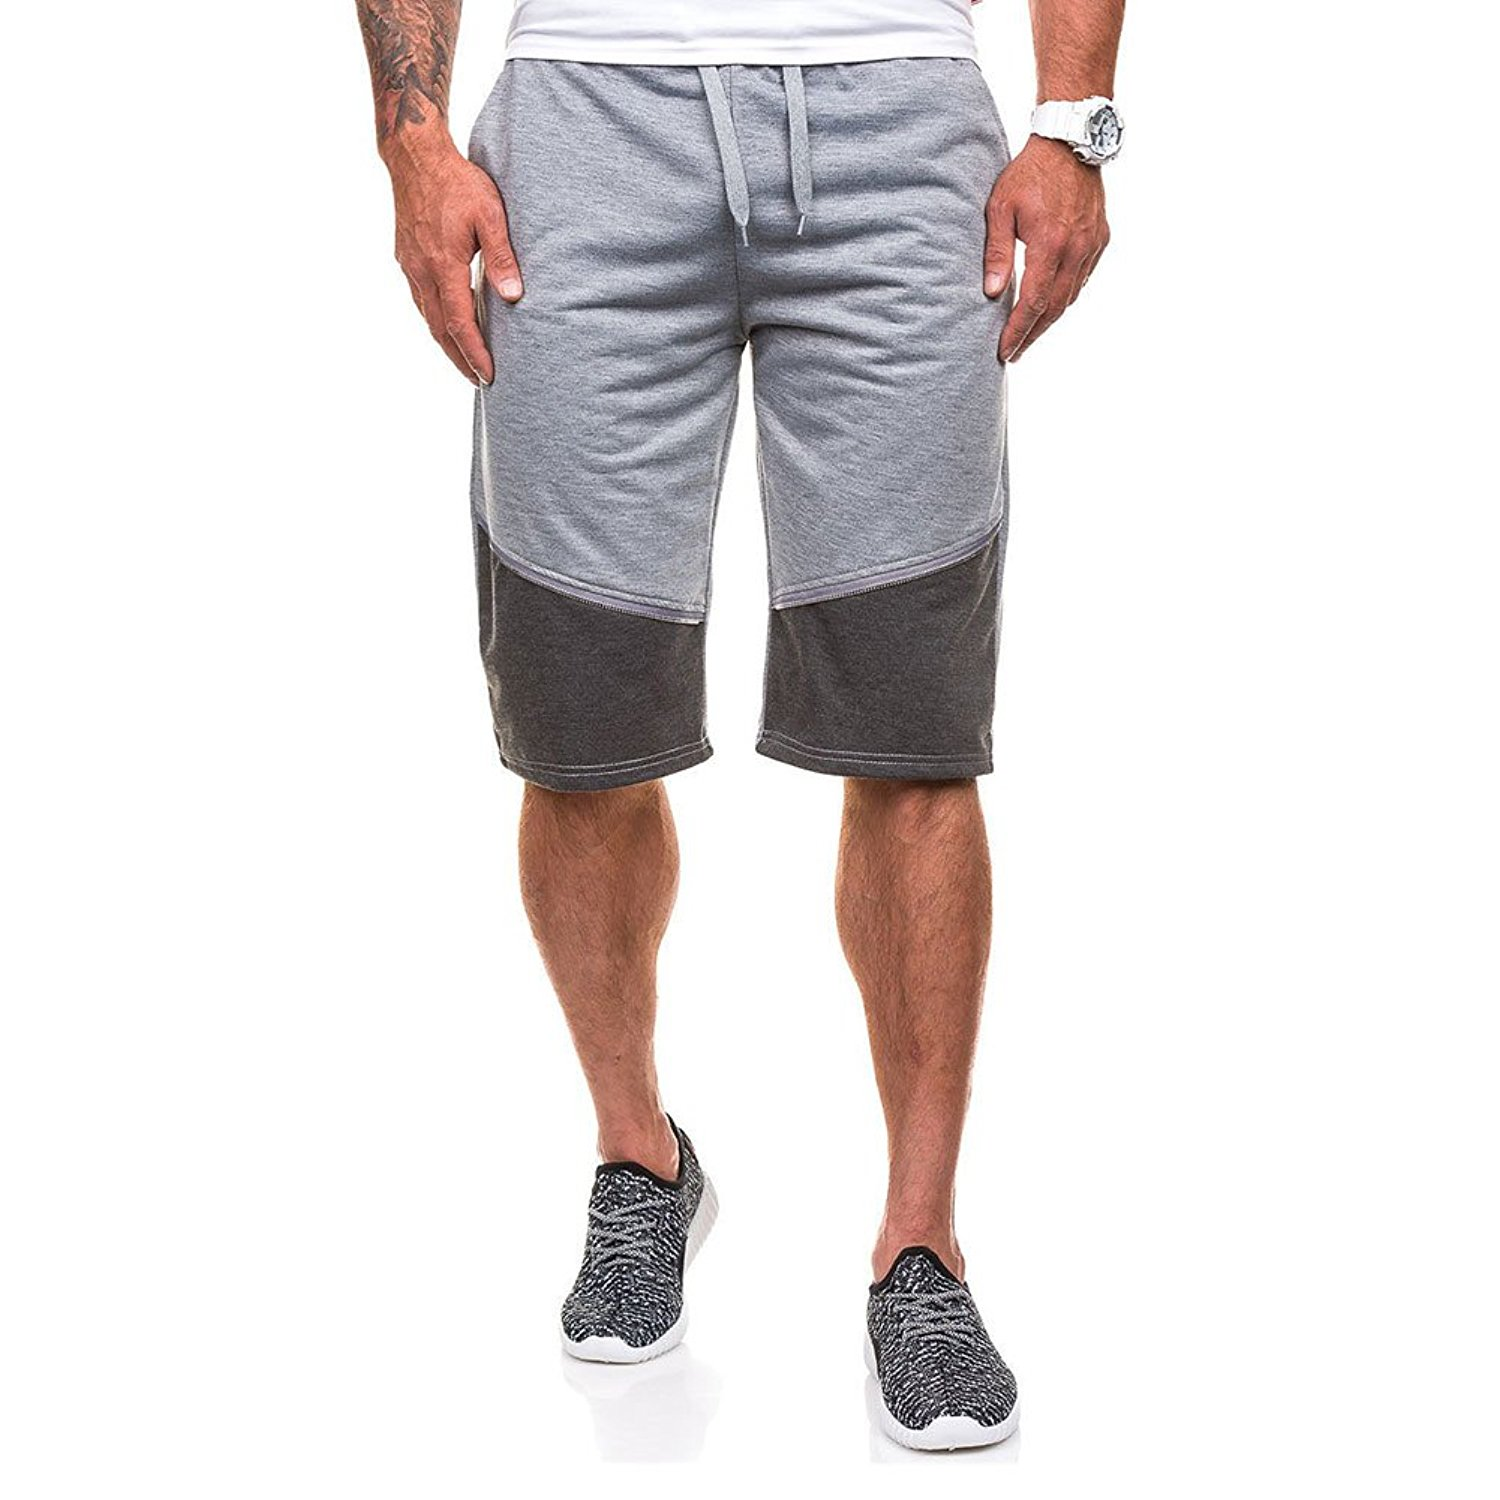 MUSE FATH Mens Casual Sport Shorts, Loose Fit and Elastic Waist Sweat Shorts, Jogger Shorts